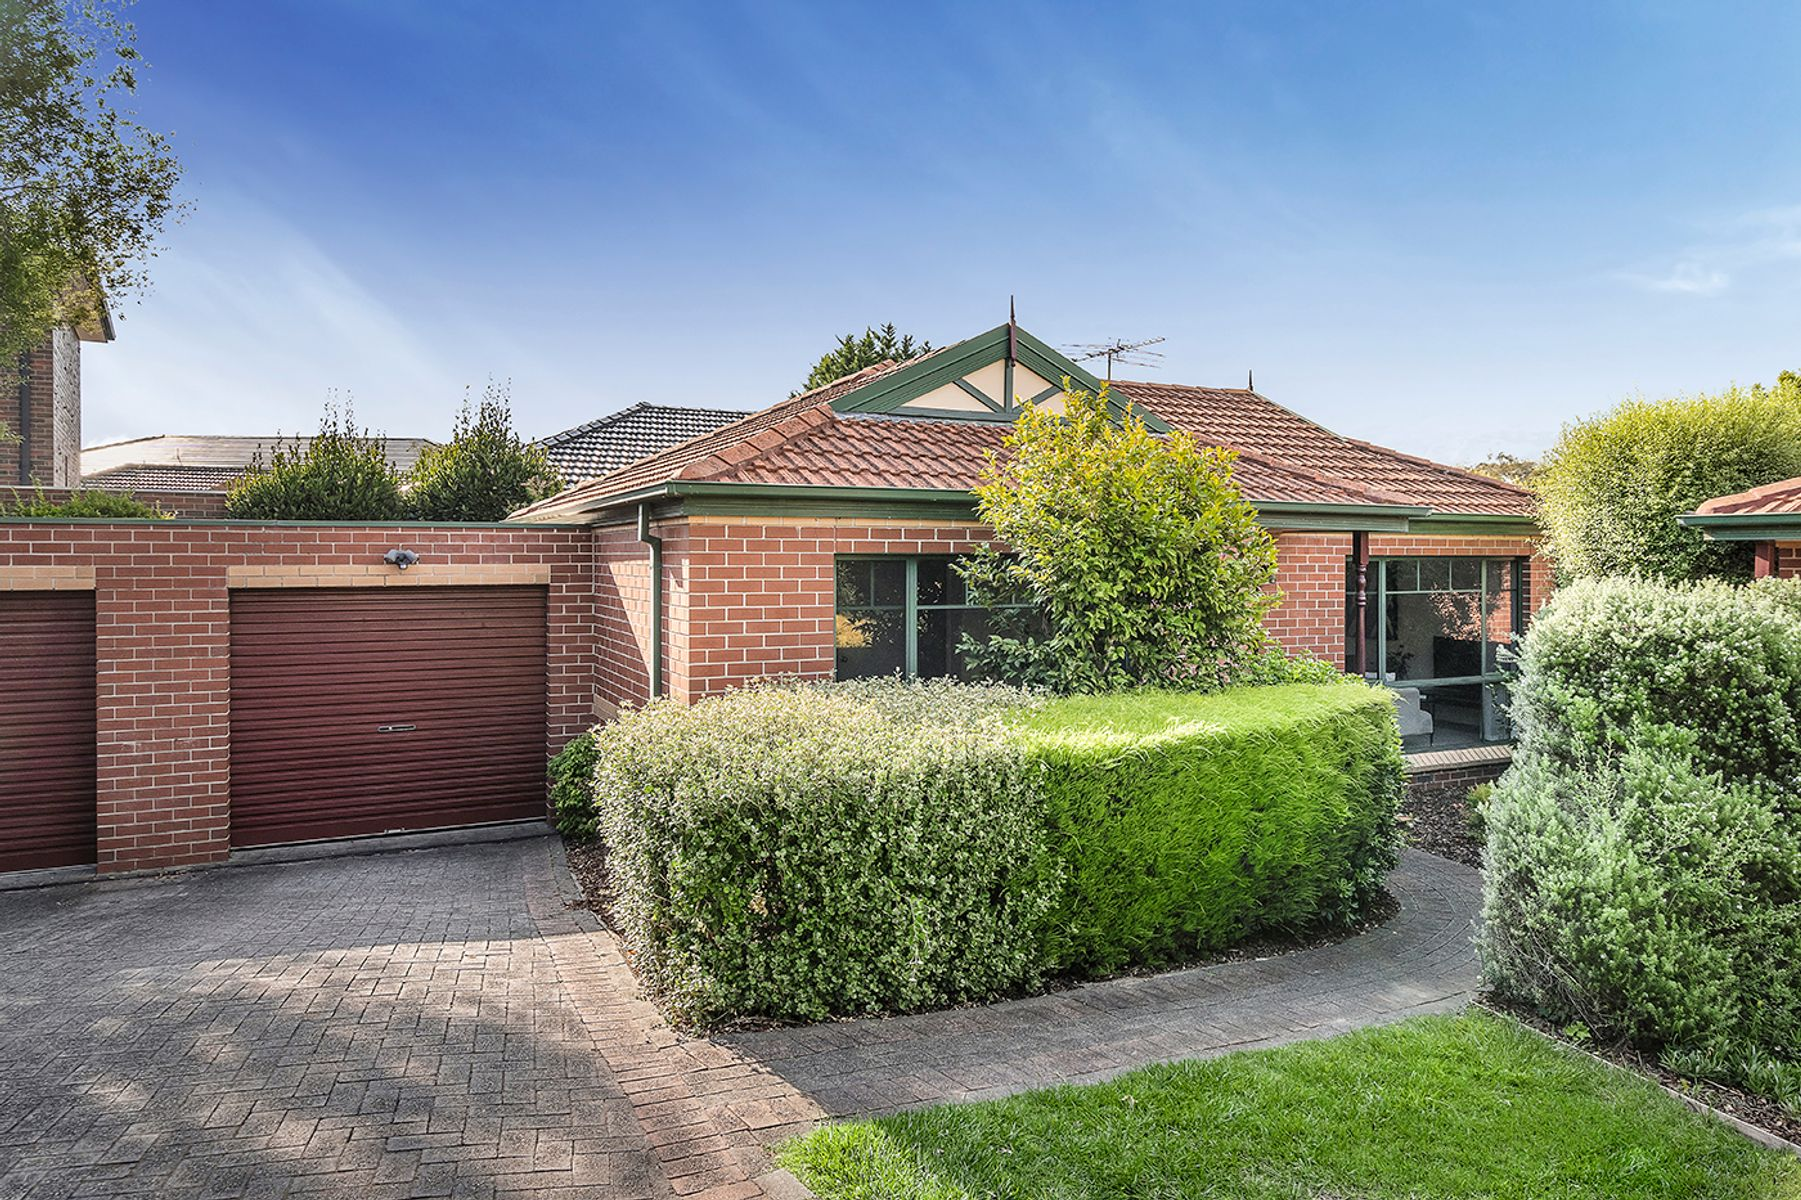 8/27 Cavalier Street, Doncaster East, VIC 3109